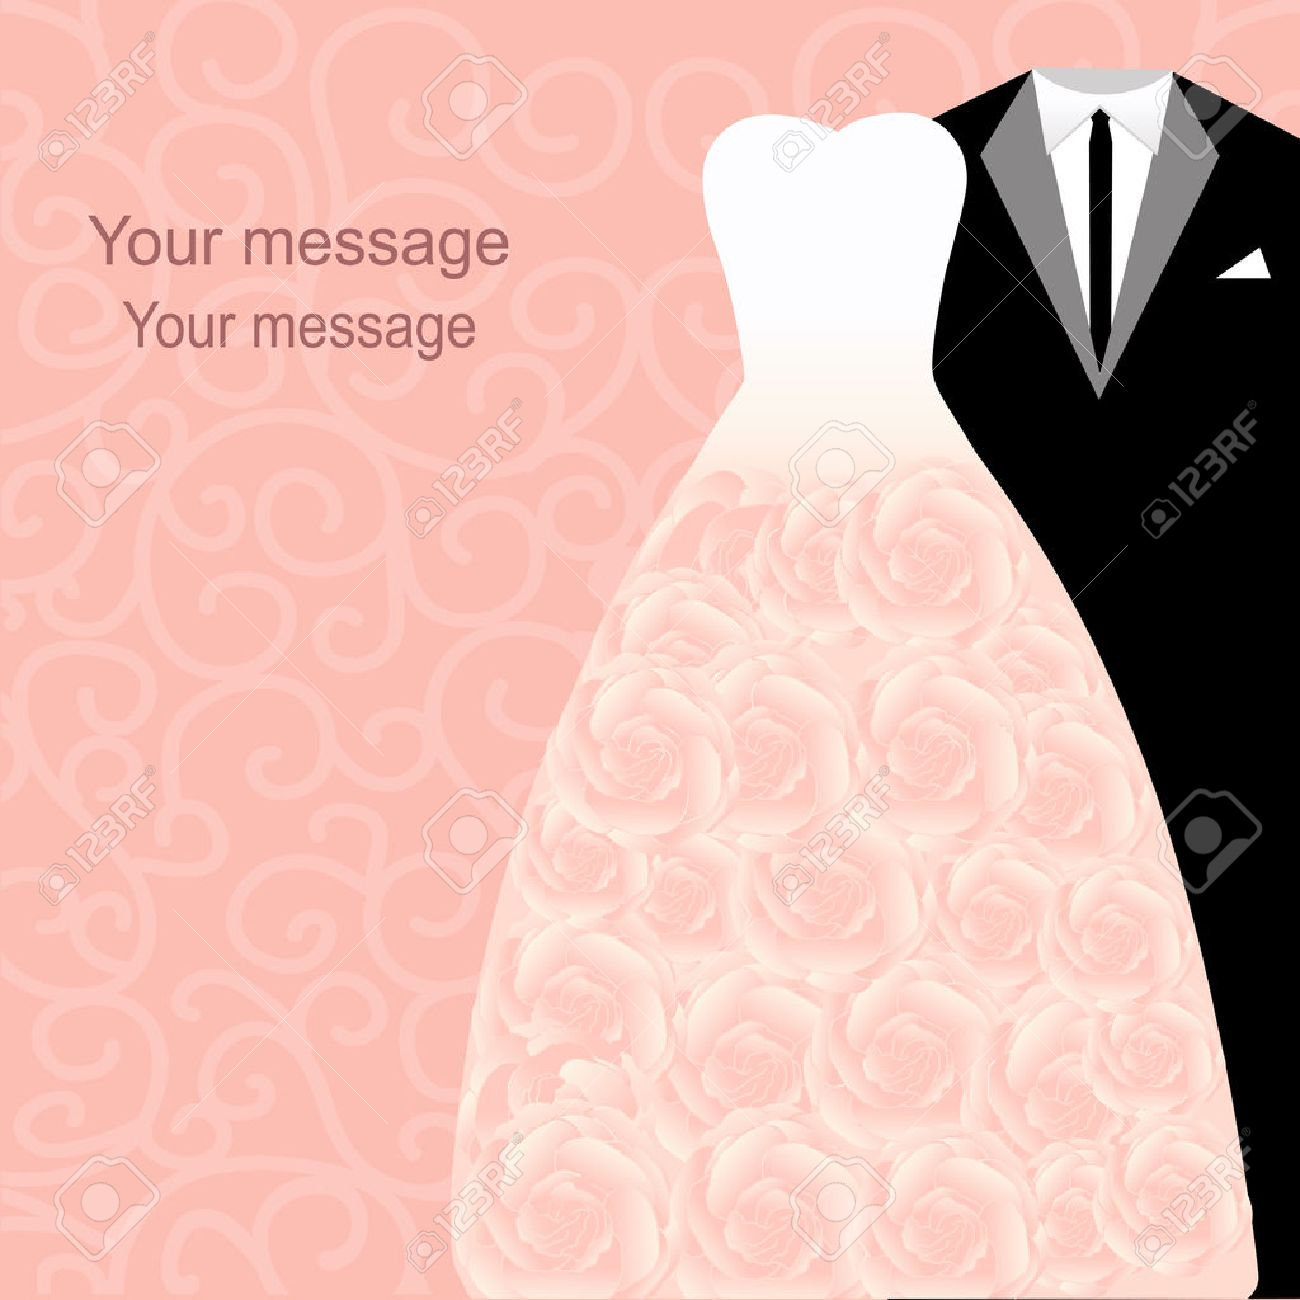 Wedding Invitation With A Tuxedo And Dress On An Abstract ...